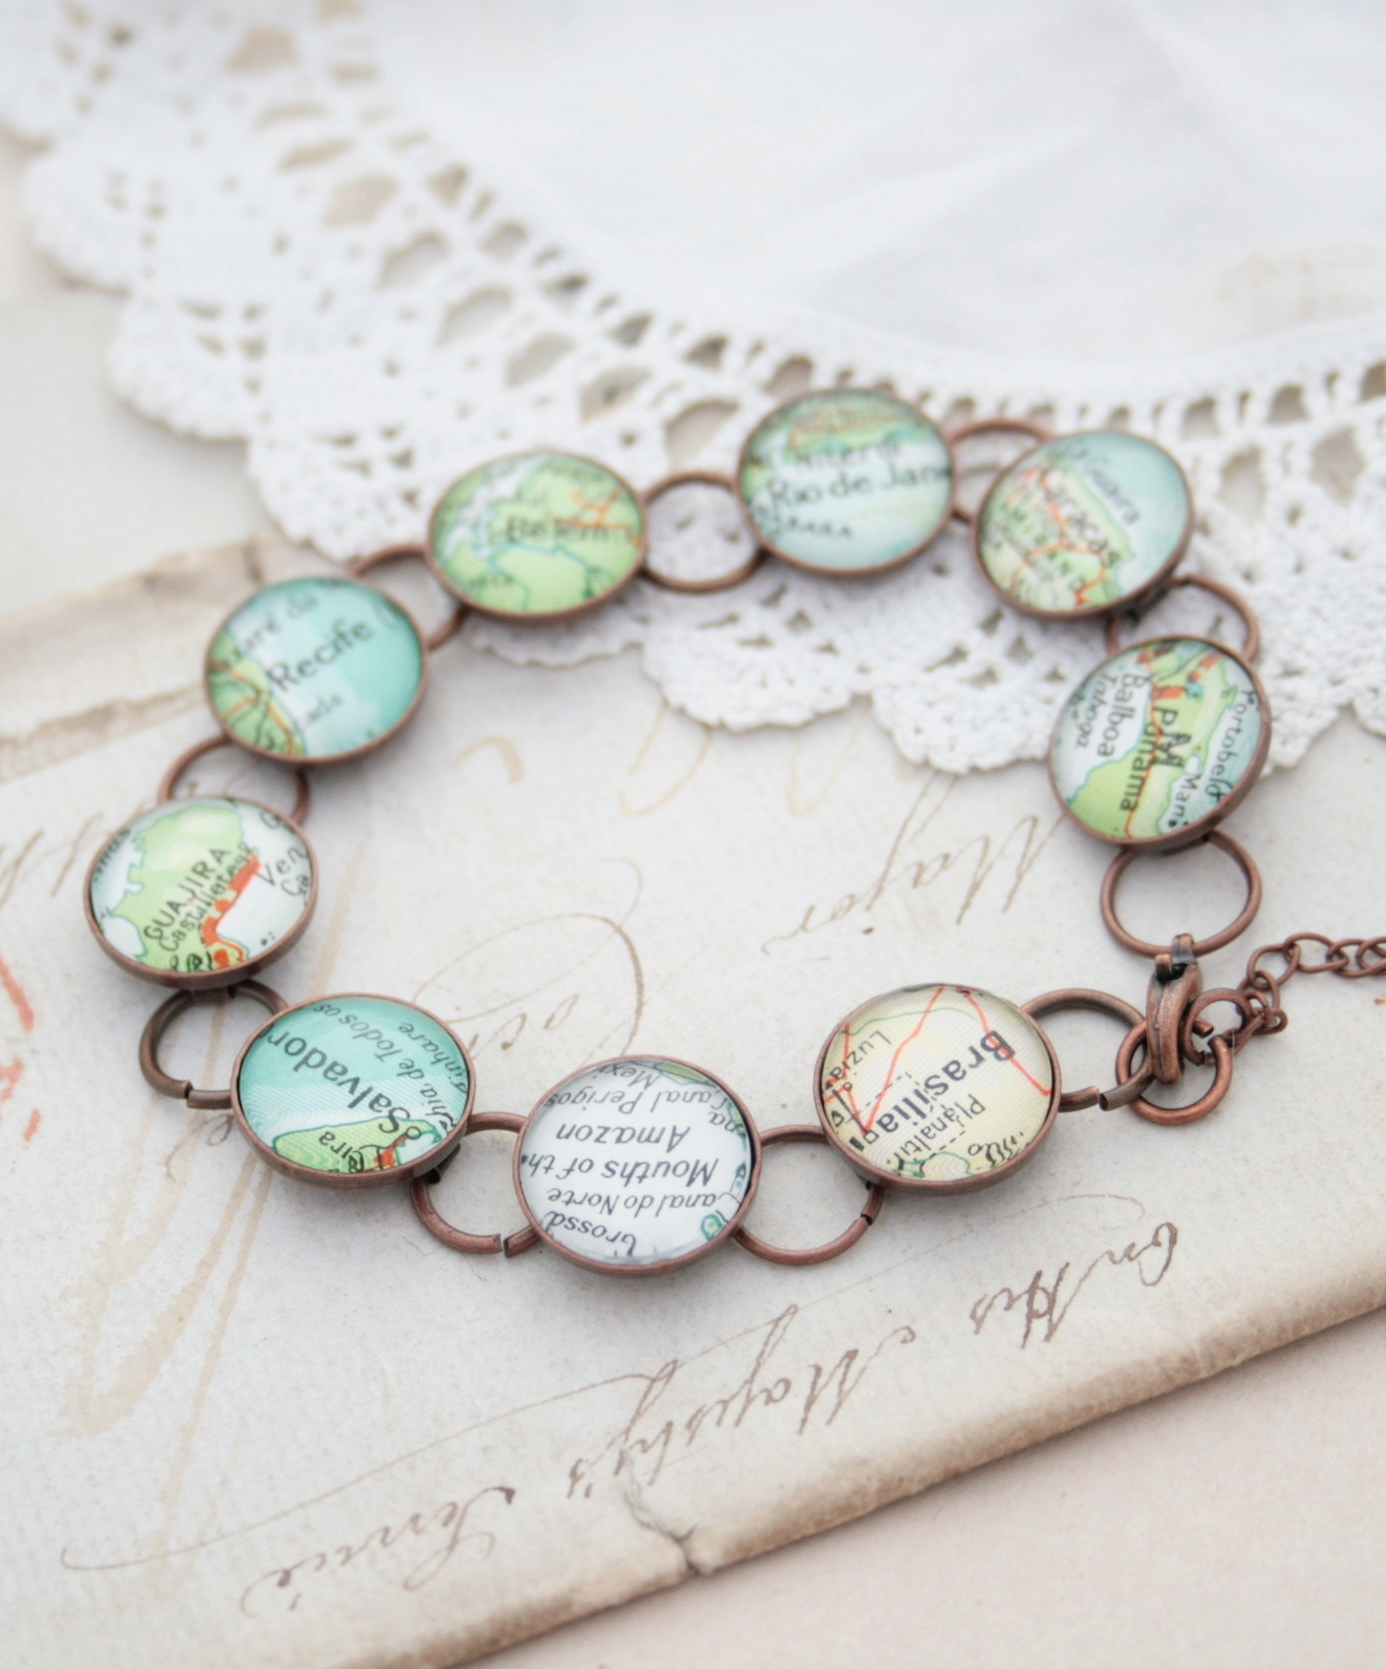 copper bracelet with map locations